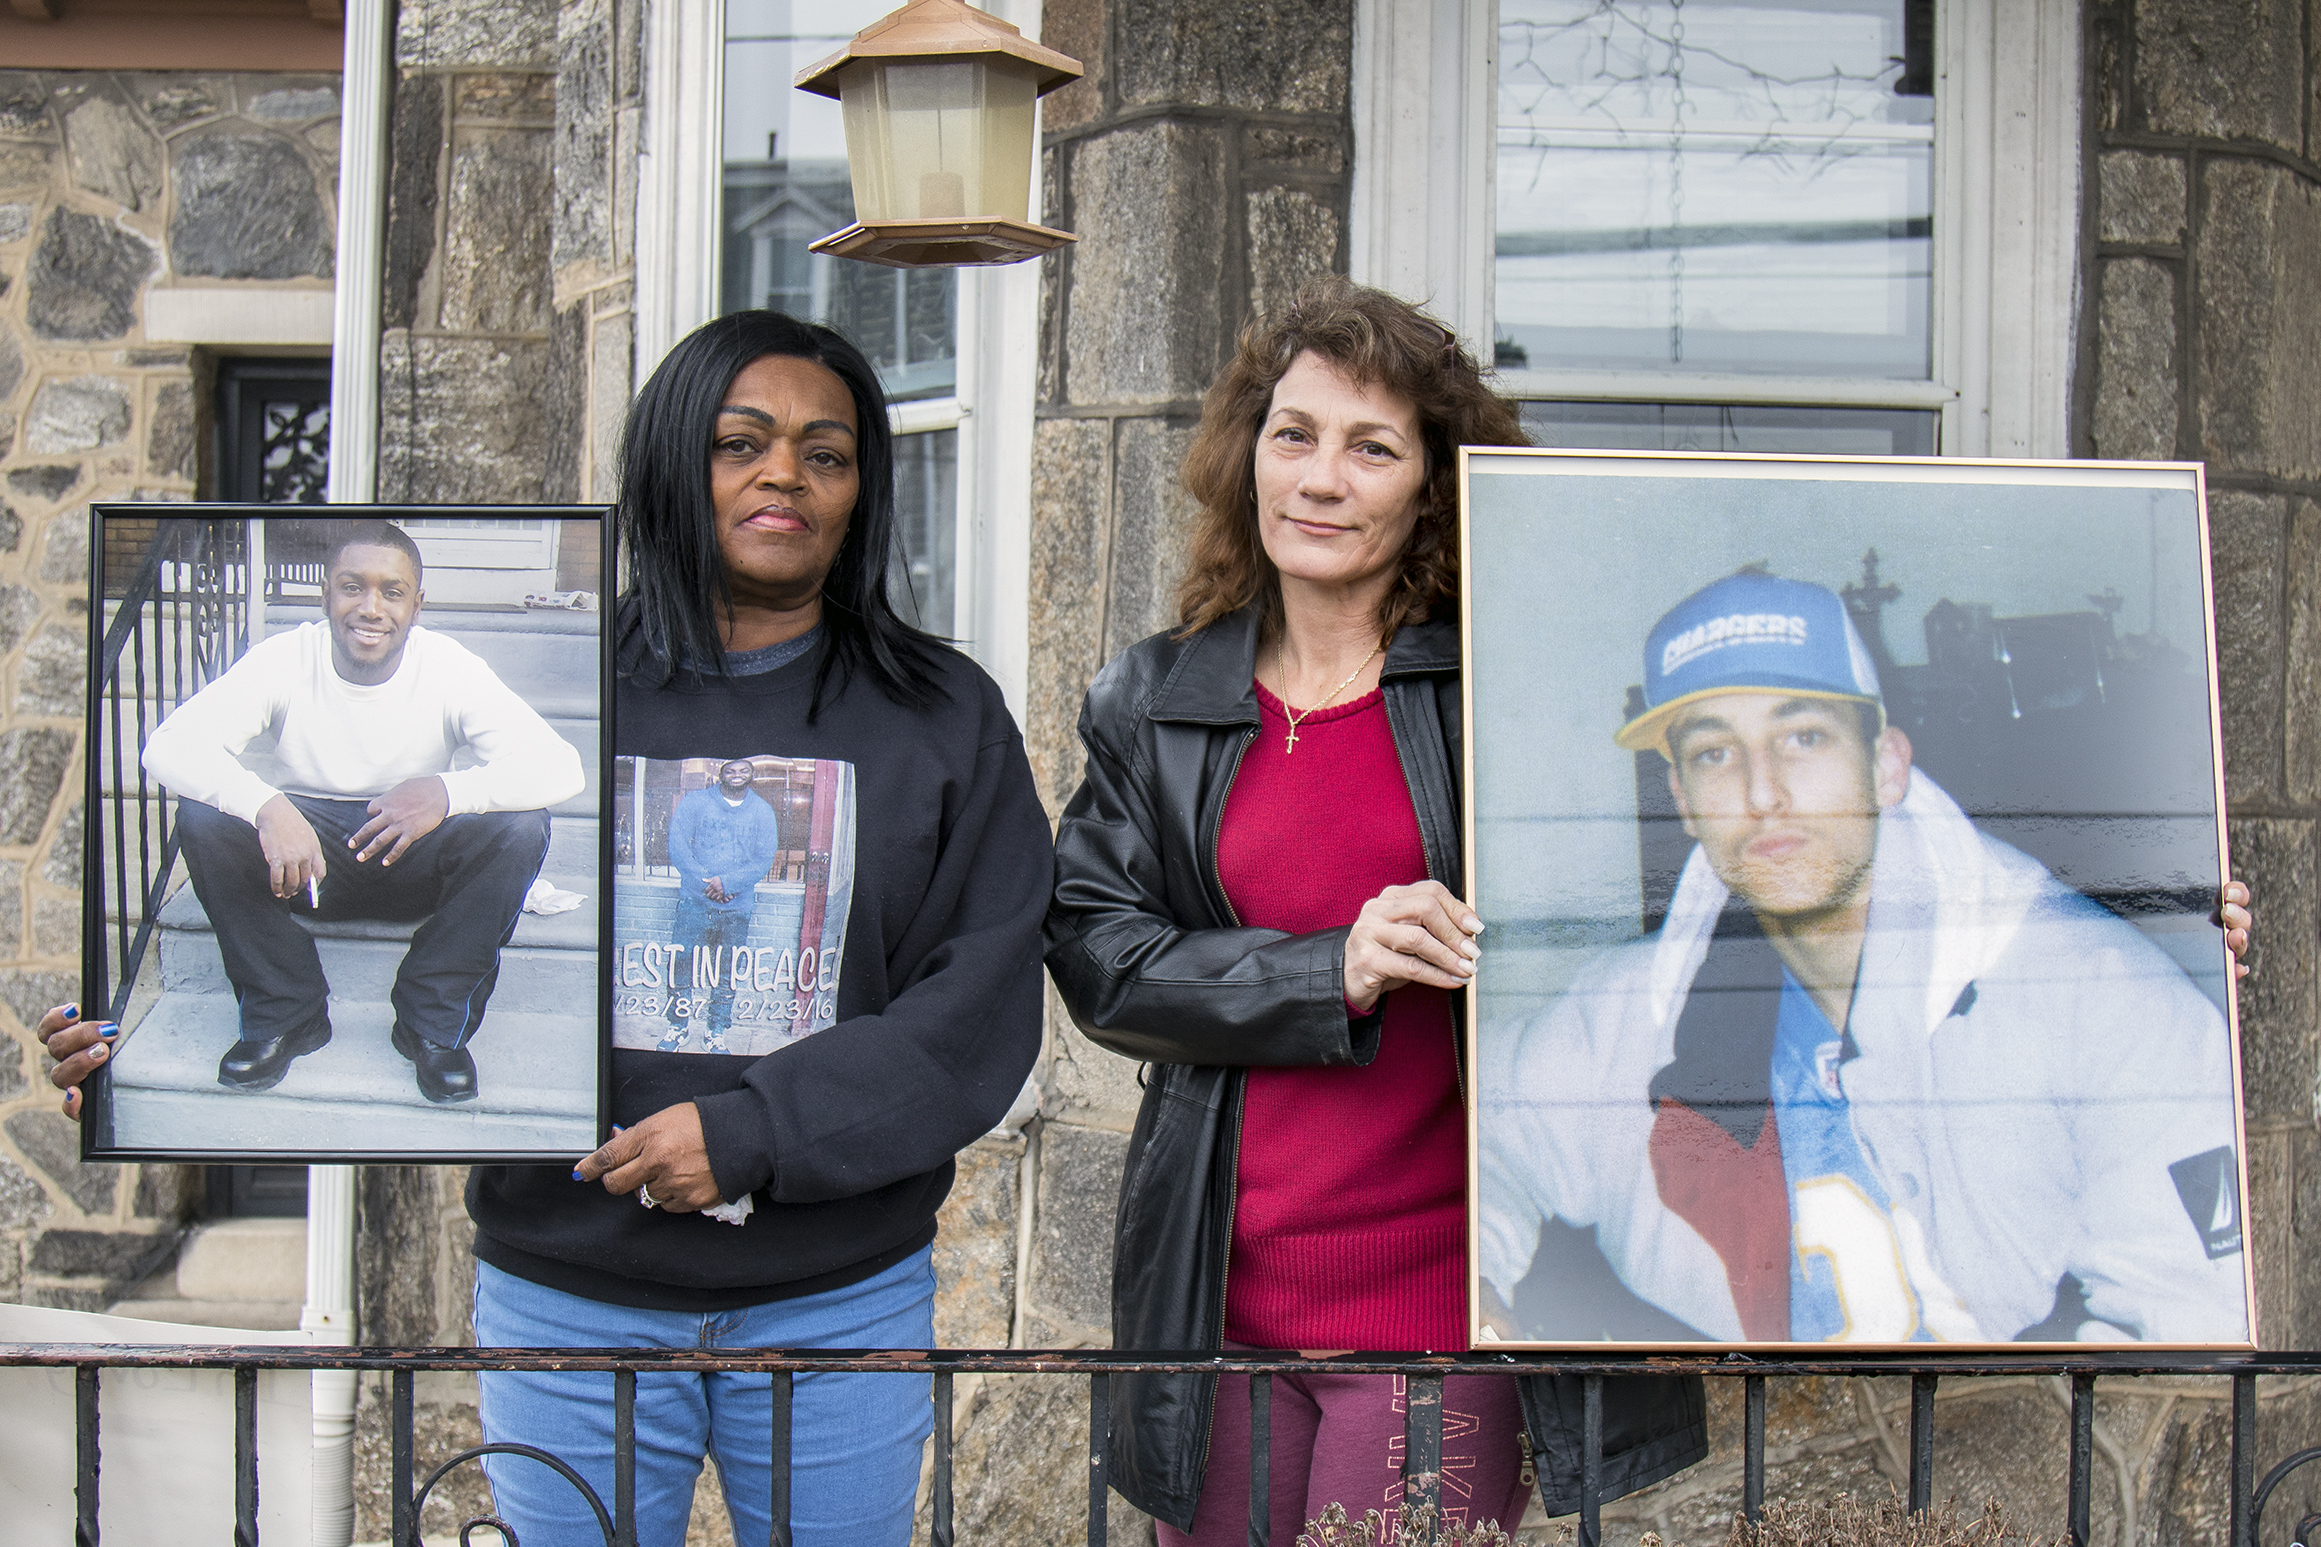 Yullio Robbins (left), and Sophia Fleming (right), both hold up a photo of their sons standing on the porch of Sophia Fleming´s home at the 100 block of West Seymour Street, near Green St, in Philadelphia. Yullio Robbins and Sophia Fleming are two city mothers bonded over the unsolved murders of their sons. When Robbins set up a memorial to her son, killed last year, in front of Fleming´s Seymour Street home, she had no idea that Fleming´s intimately knew her pain. In 2004 Fleming´s teenage son was murdered. The mothers have since bonded. Both cases remain unsolved. Thursday morning, February 23, 2017. ANTHONY BELTRAN / Staff Photographer